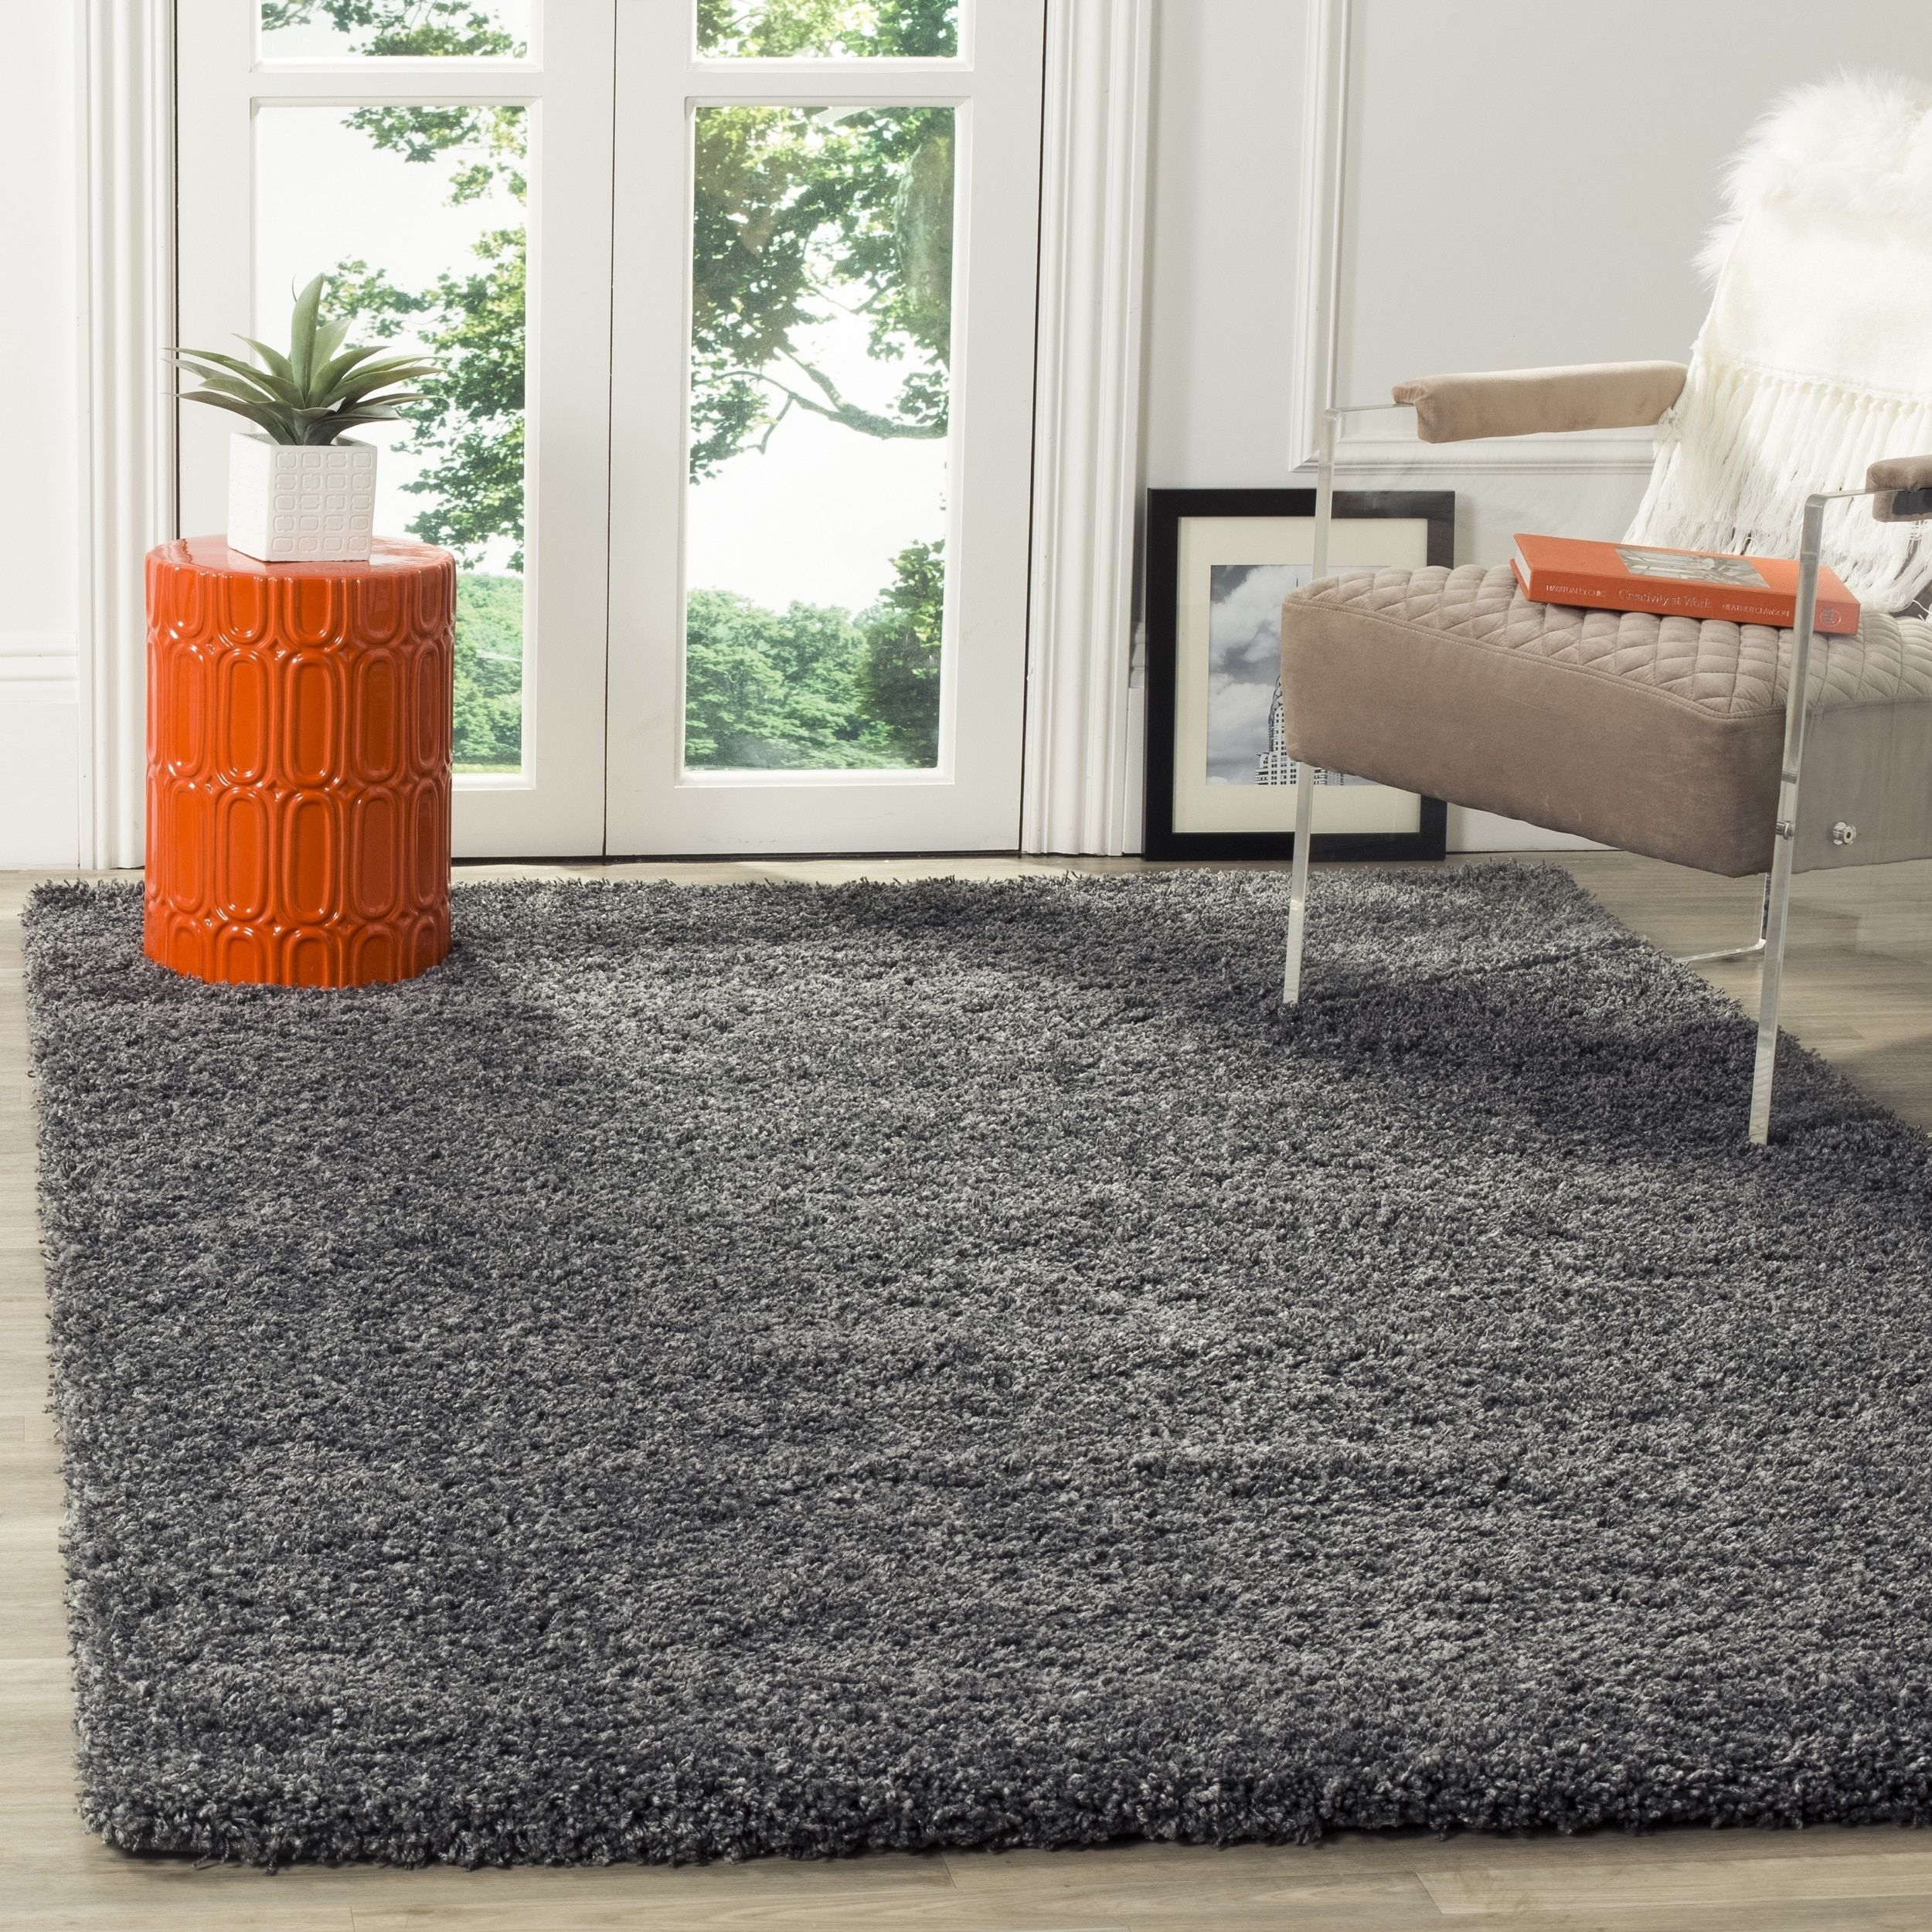 The Casual West Coast Aesthetic Is Celebrated In This Rug From Safavieh S Sensational California Collection Dark Grey Color Complemented